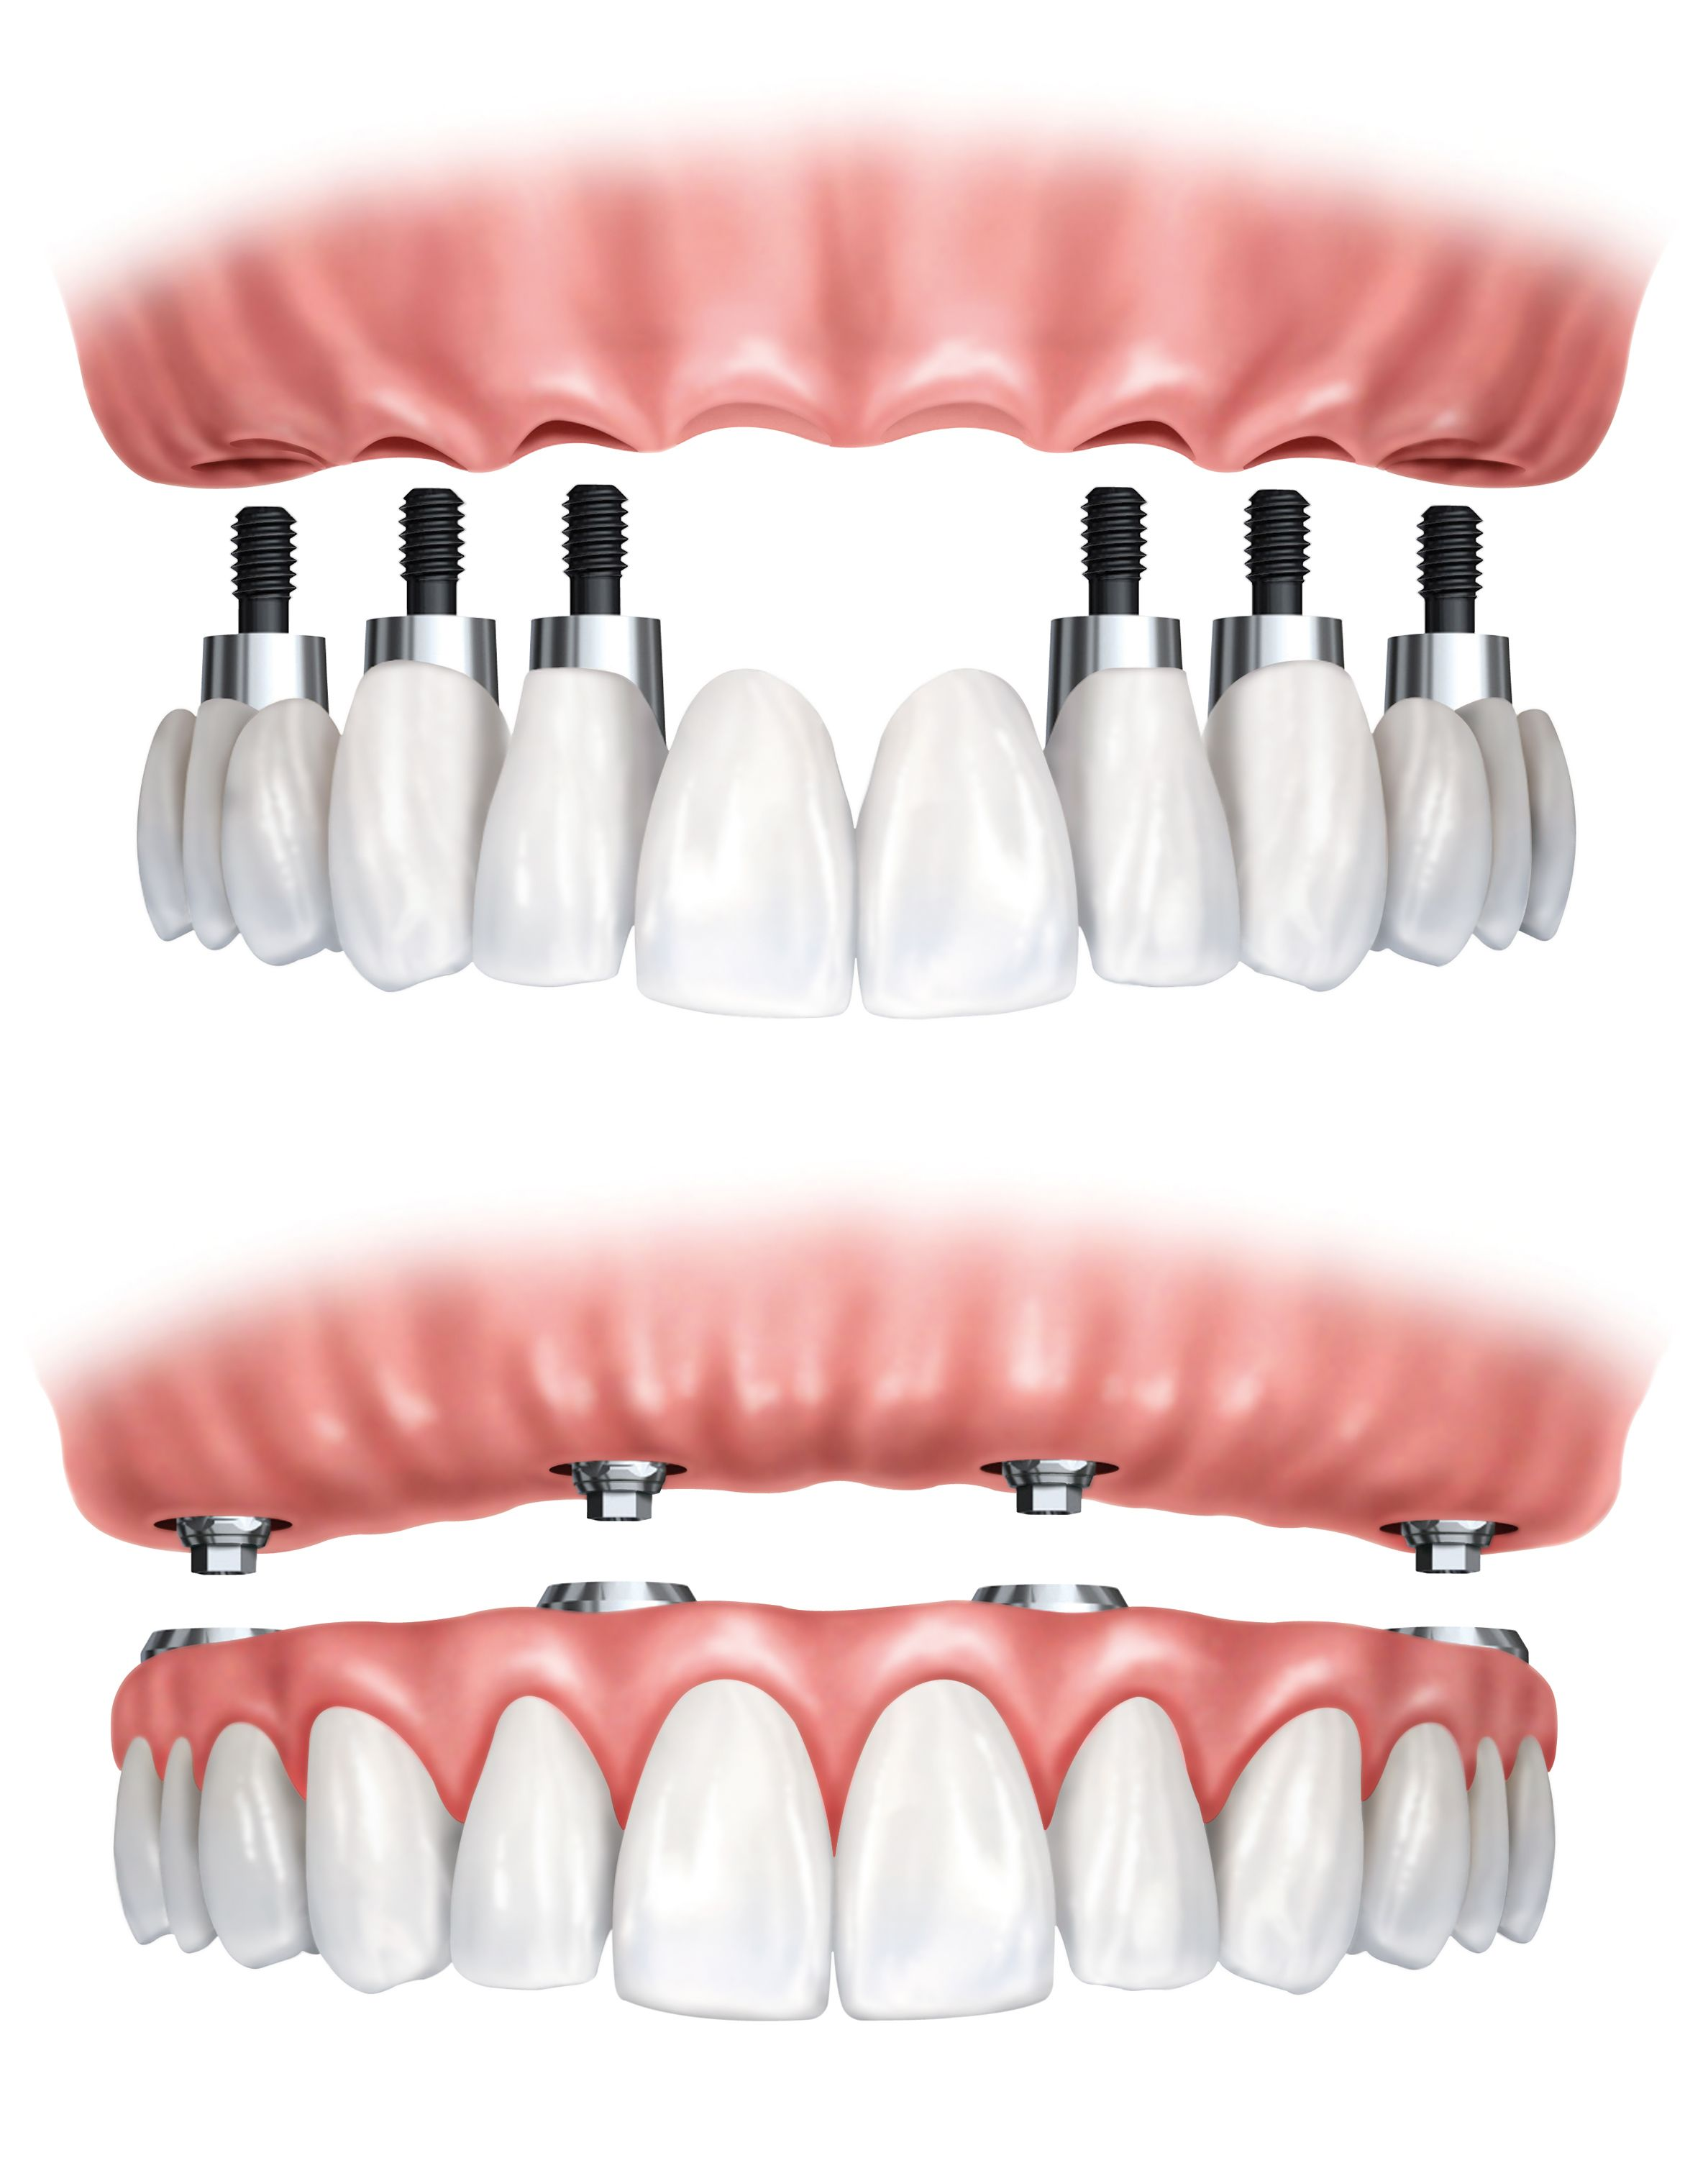 Digital image of a fixed full-arch prosthesis and an implant-supported snap-on denture